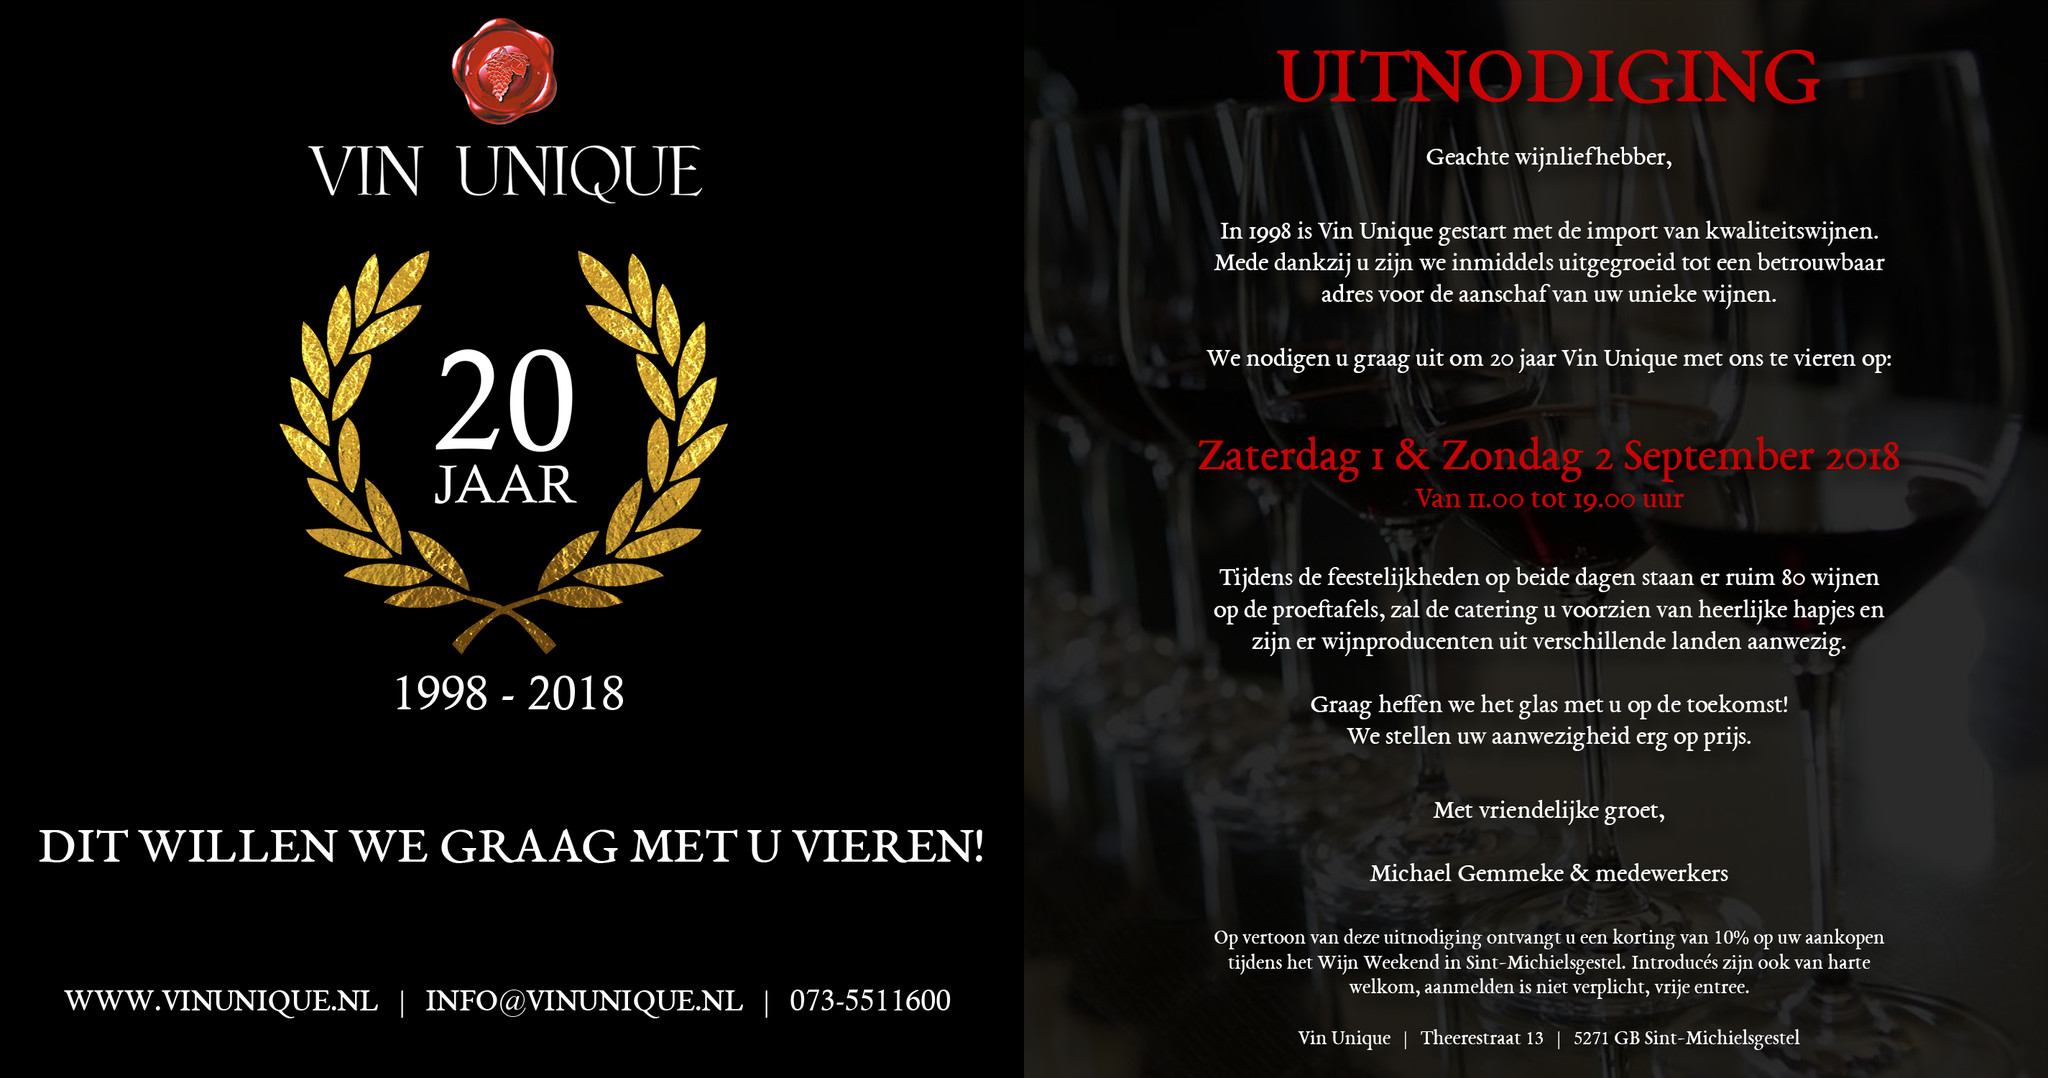 Open Wijn Weekend 20 jarig bestaan Vin Unique - 1 en 2 september 2018